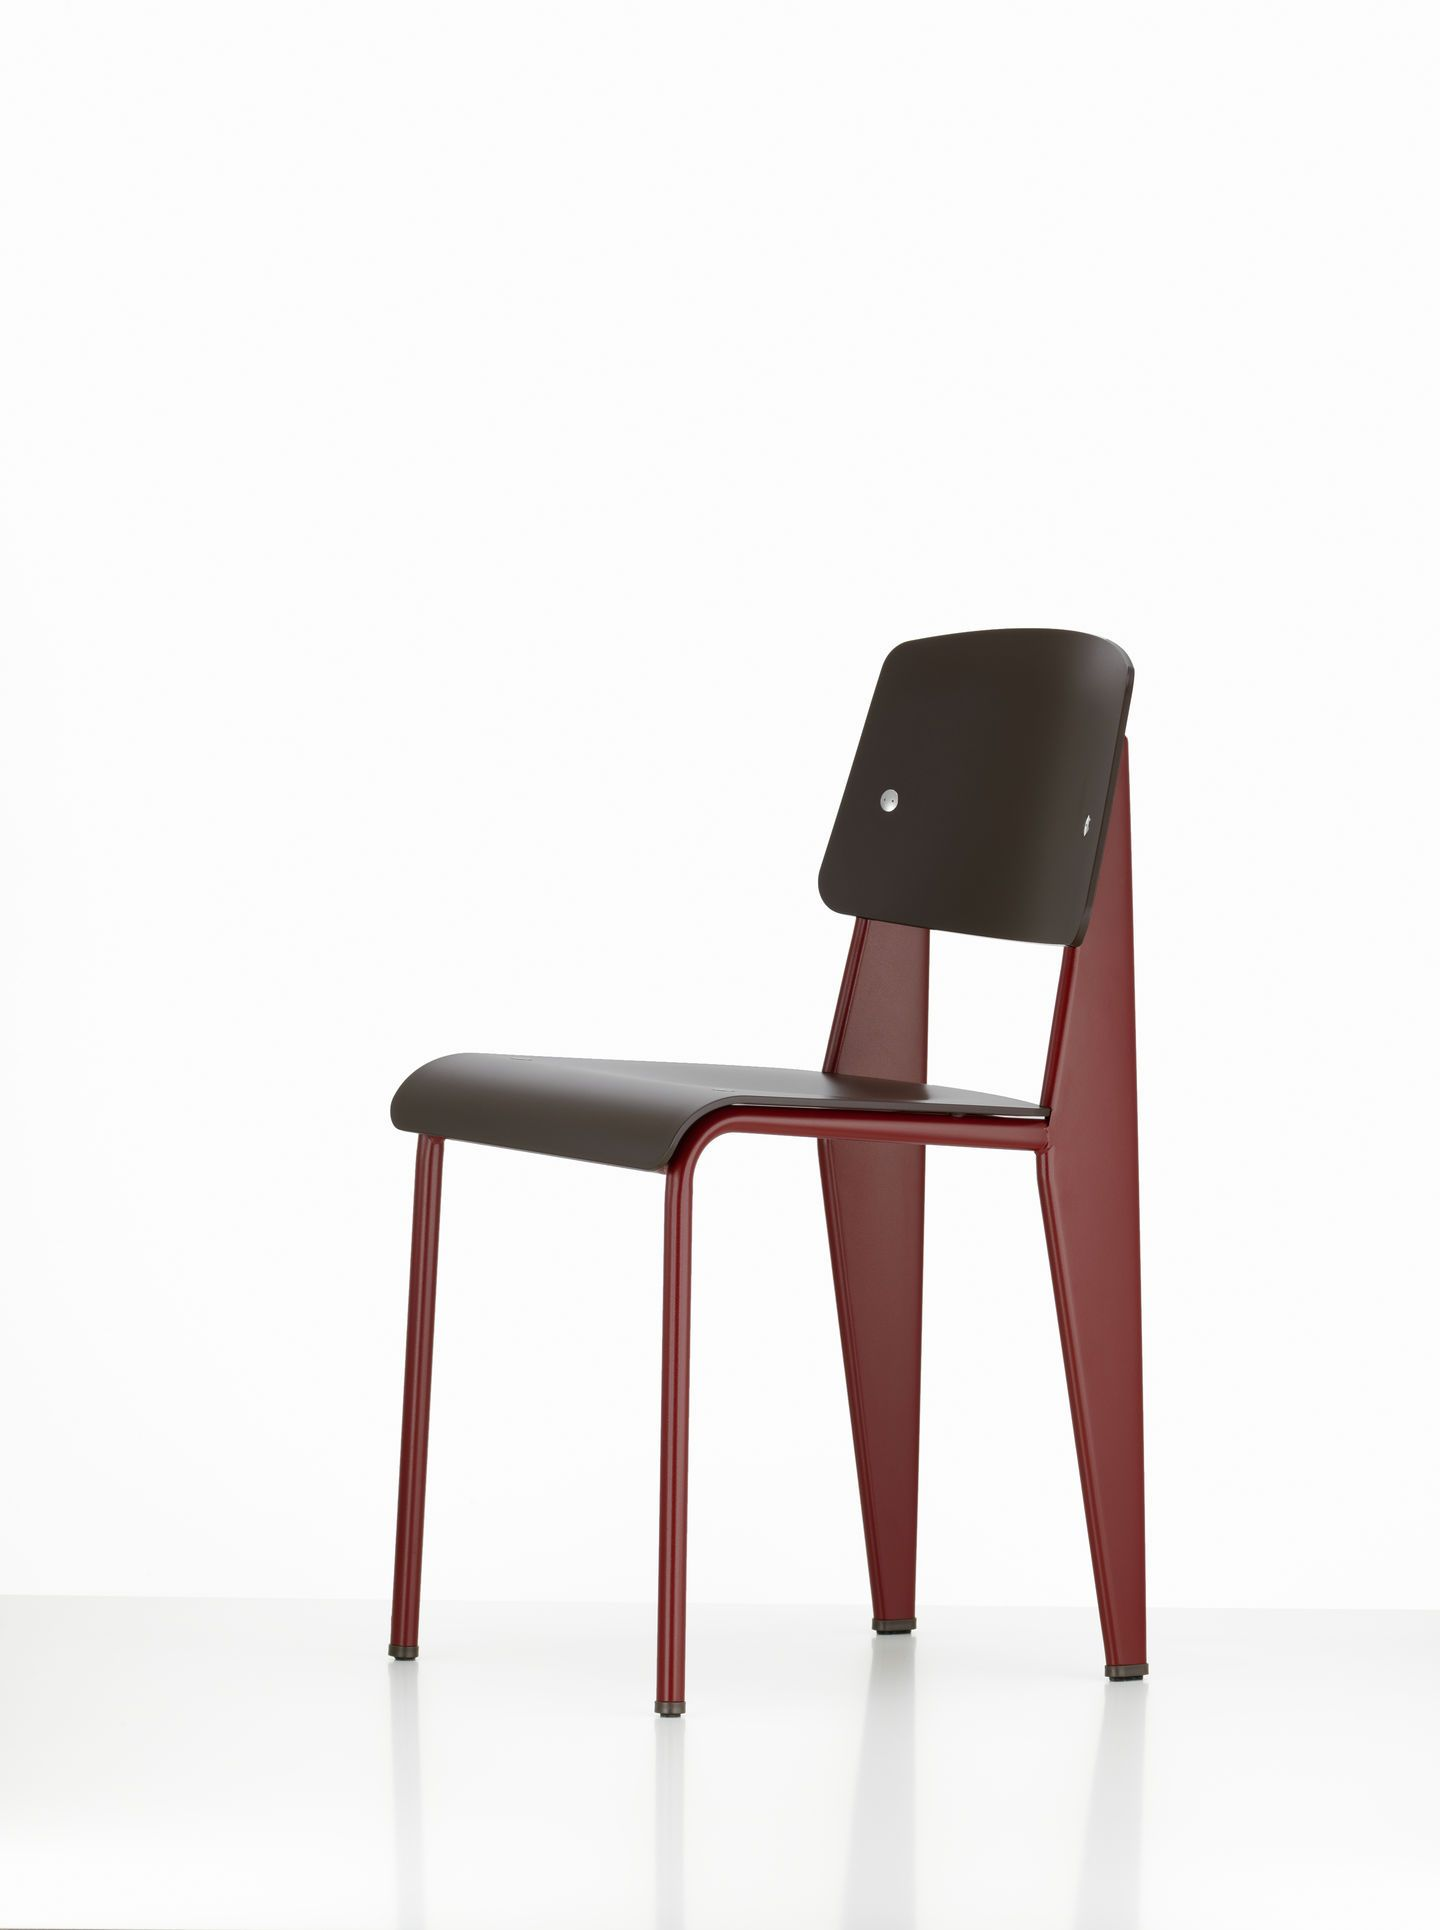 Vitra, Standard SP Chair, 06 Japanese red glides brown / 35 Basalt / Felt glides- Placewares